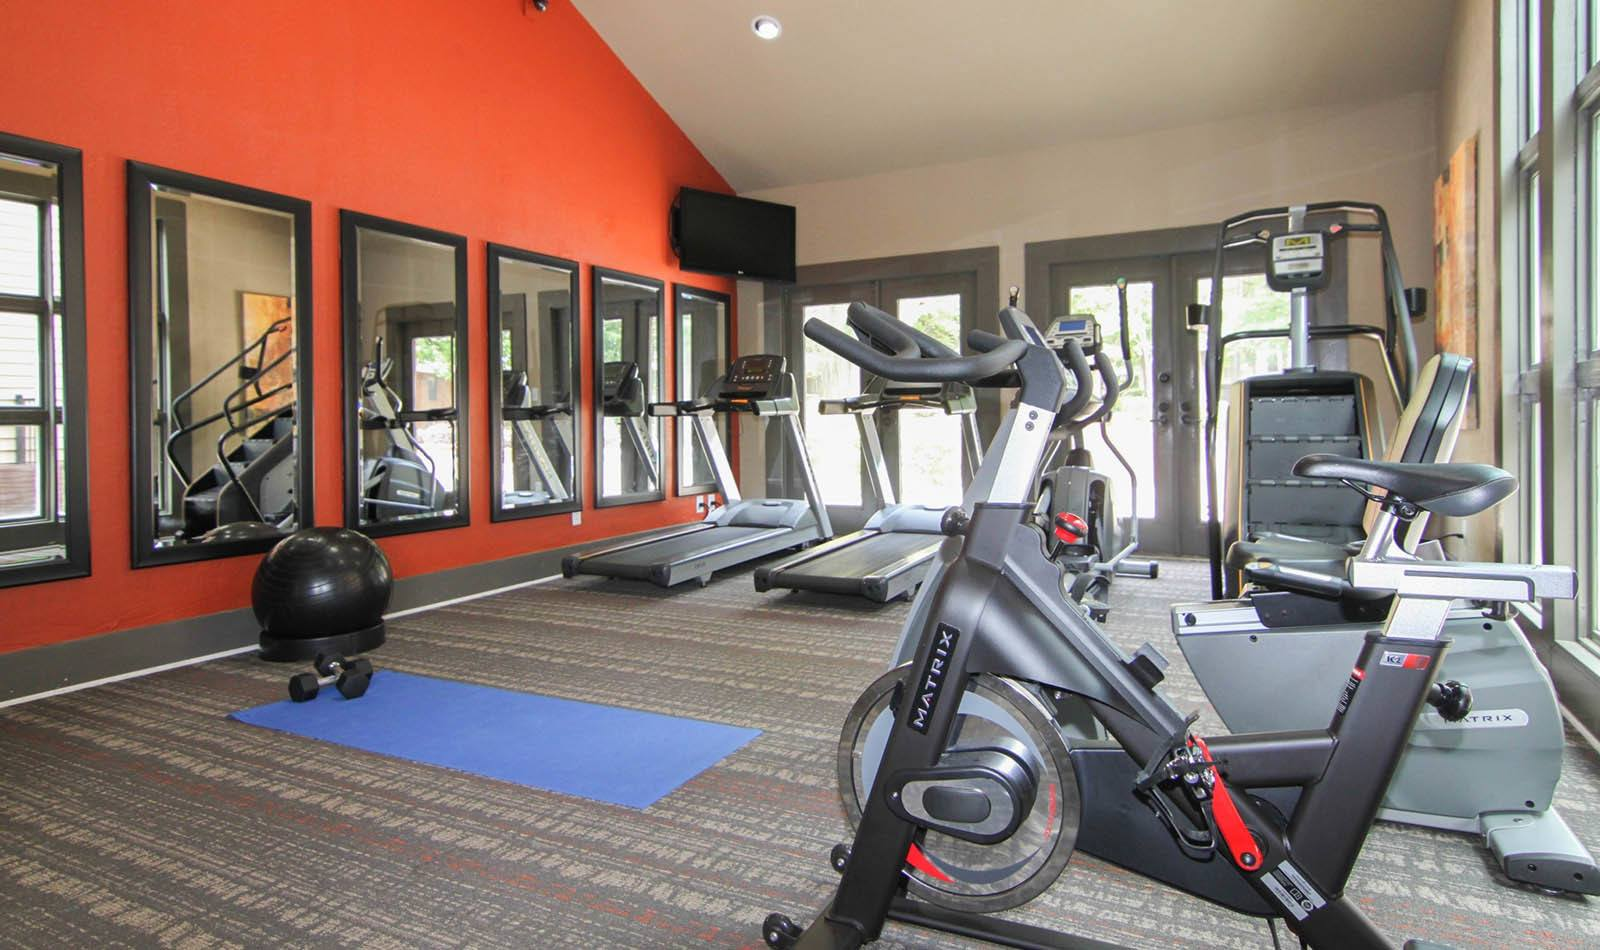 Cardio Equipment at Paces Pointe in Matthews, NC